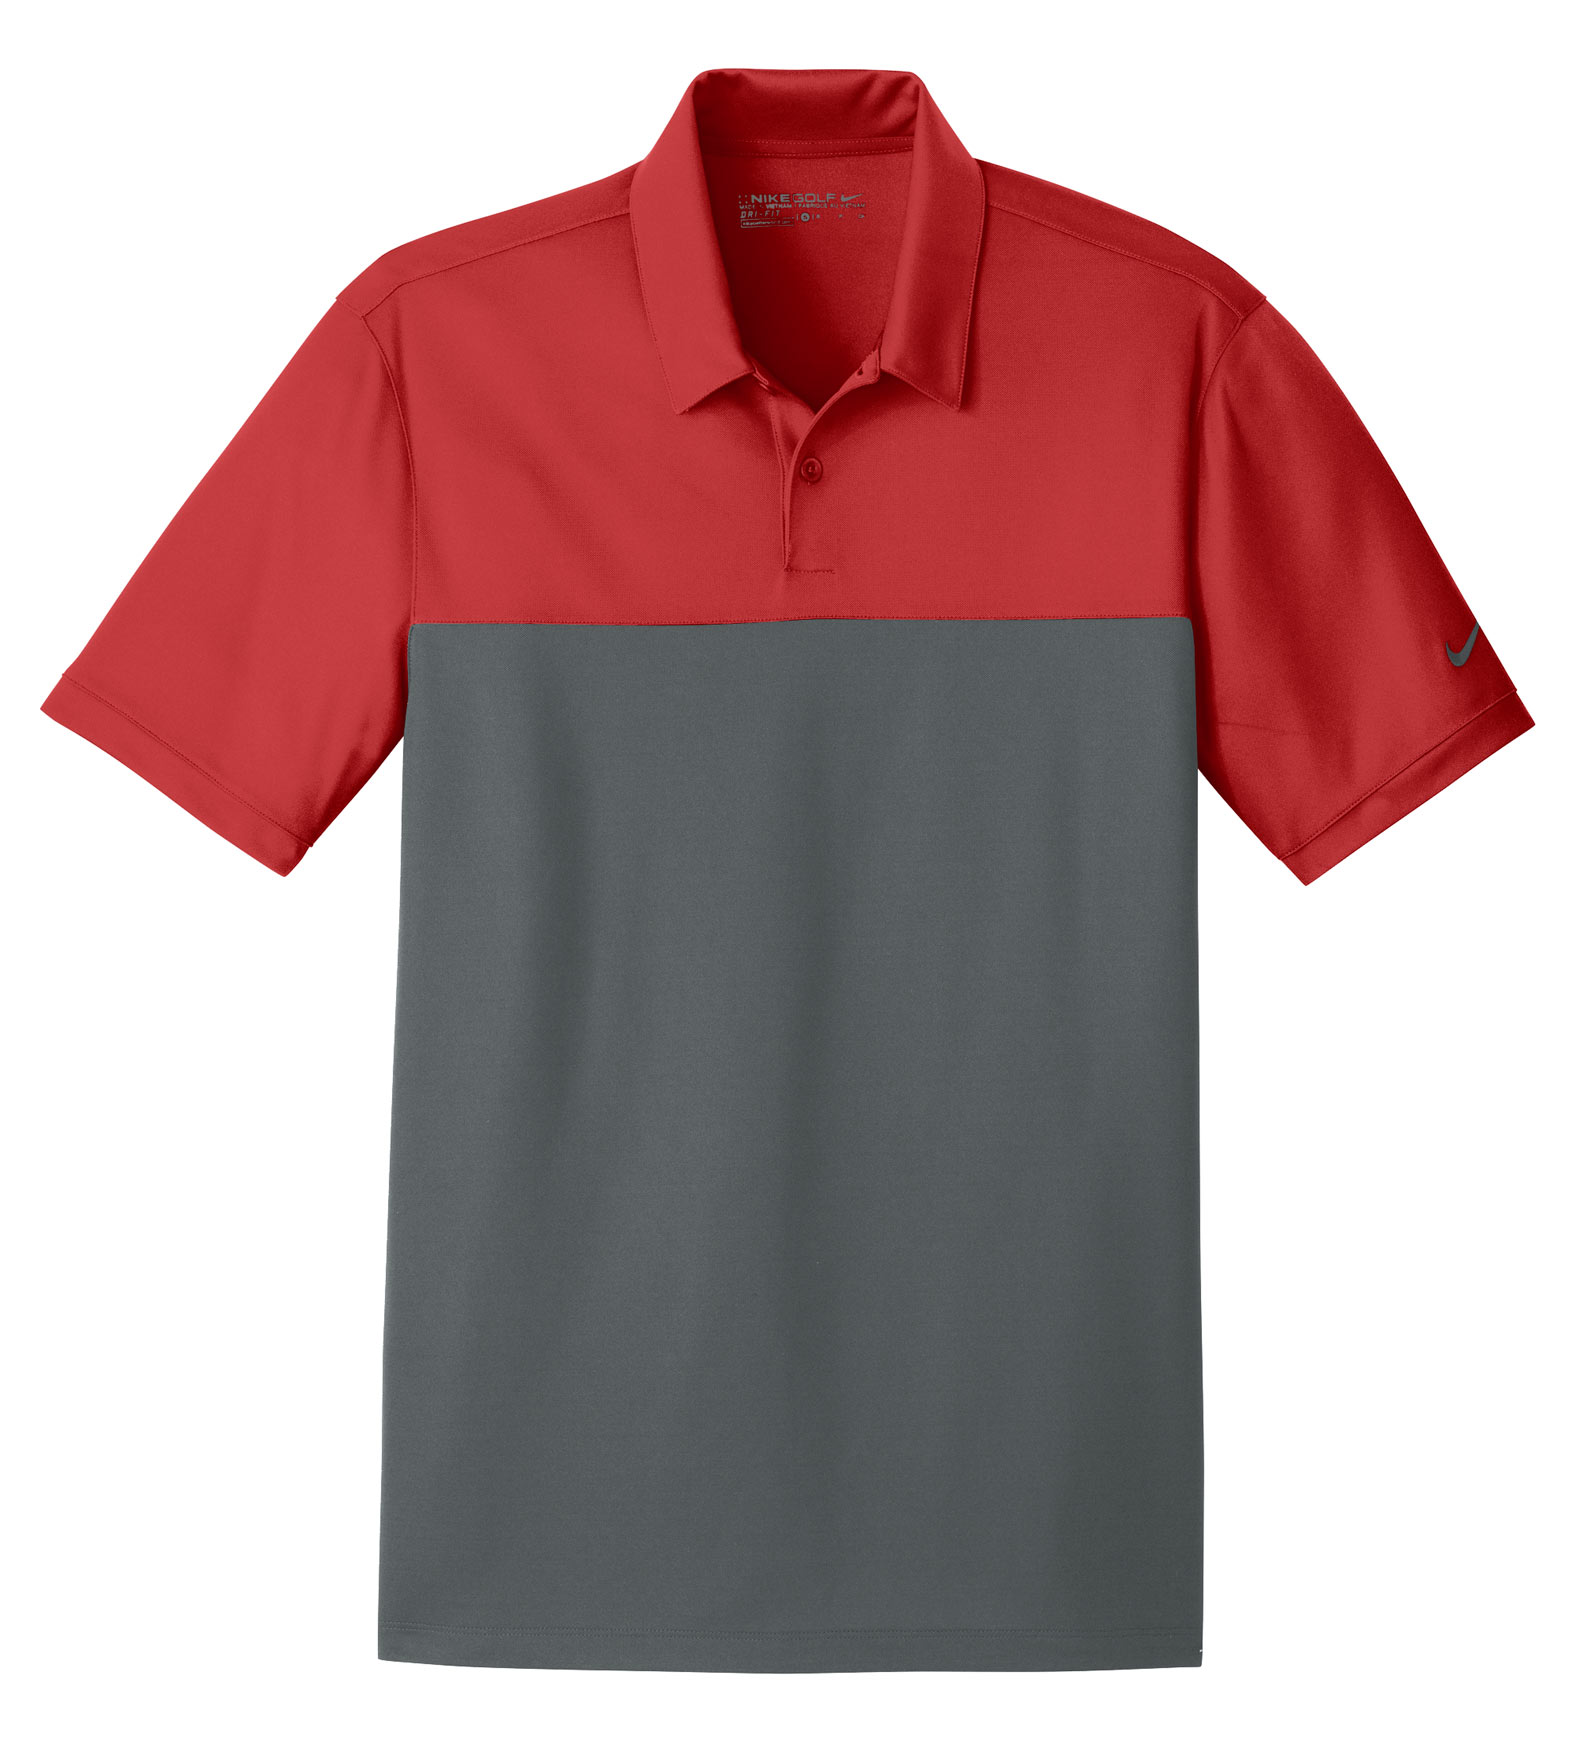 Nike Golf Dri-FIT Mens Colorblock Micro Pique Polo